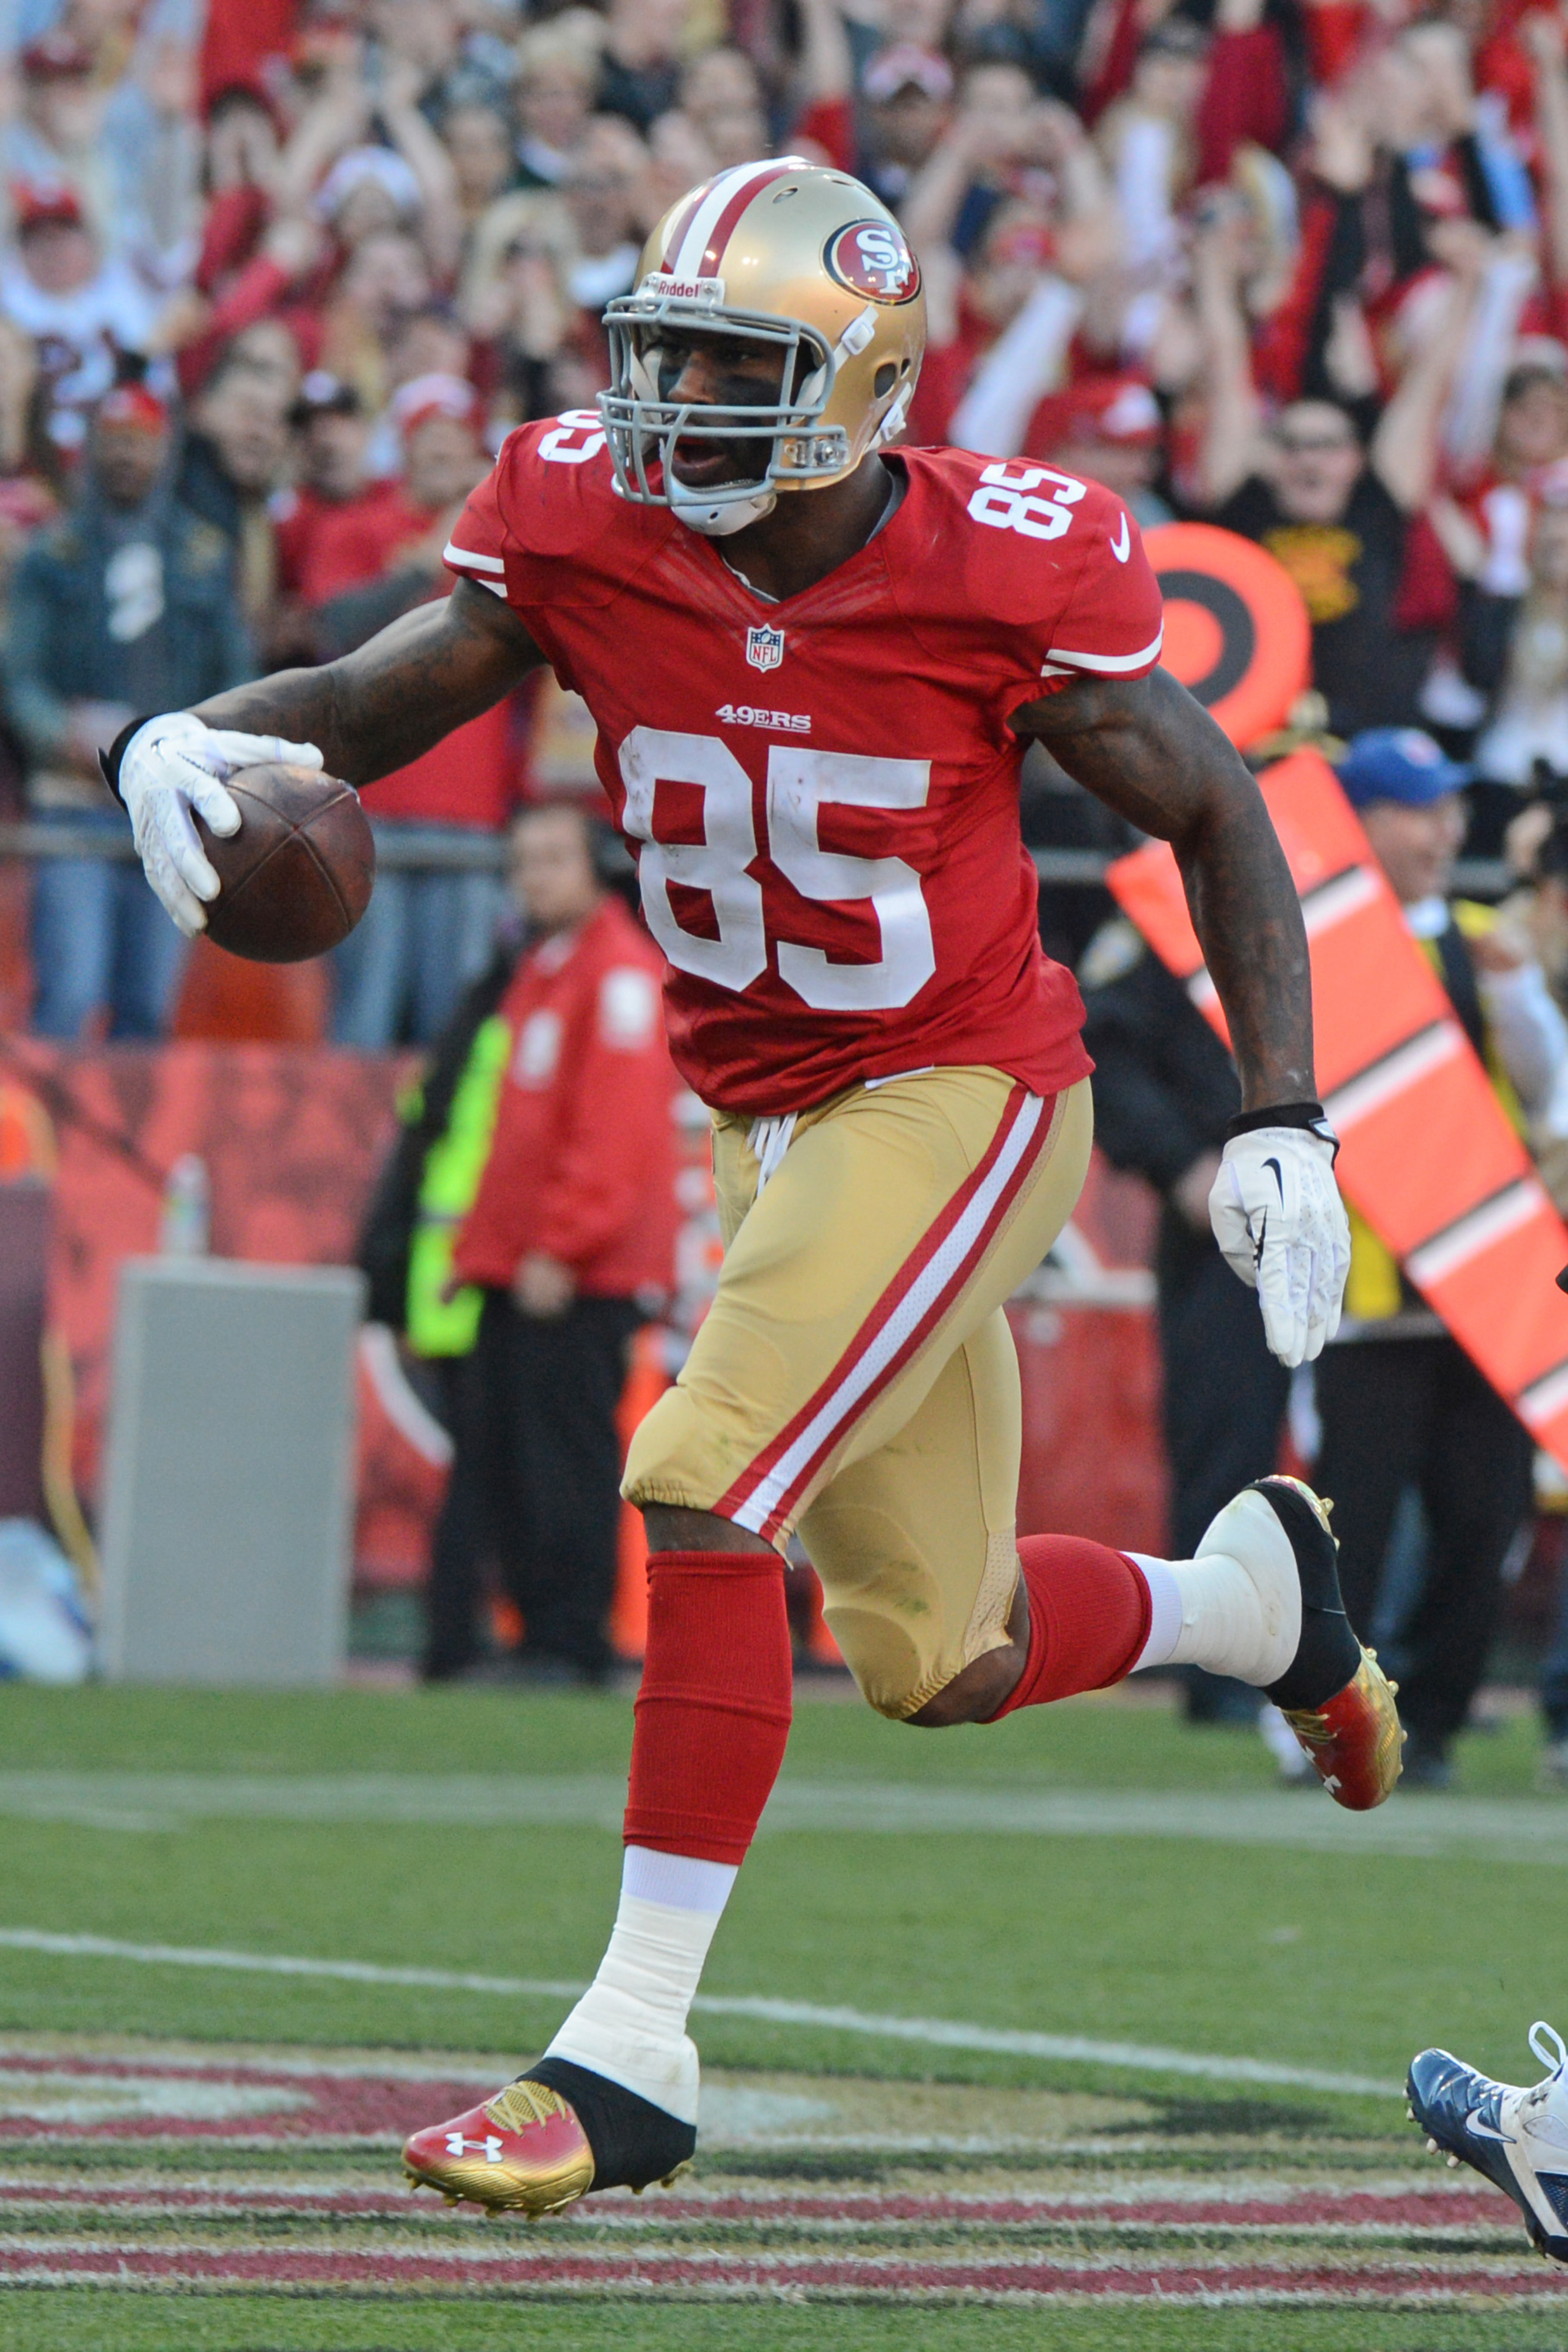 Vernon Davis says he's holding out, days after saying he wouldn't